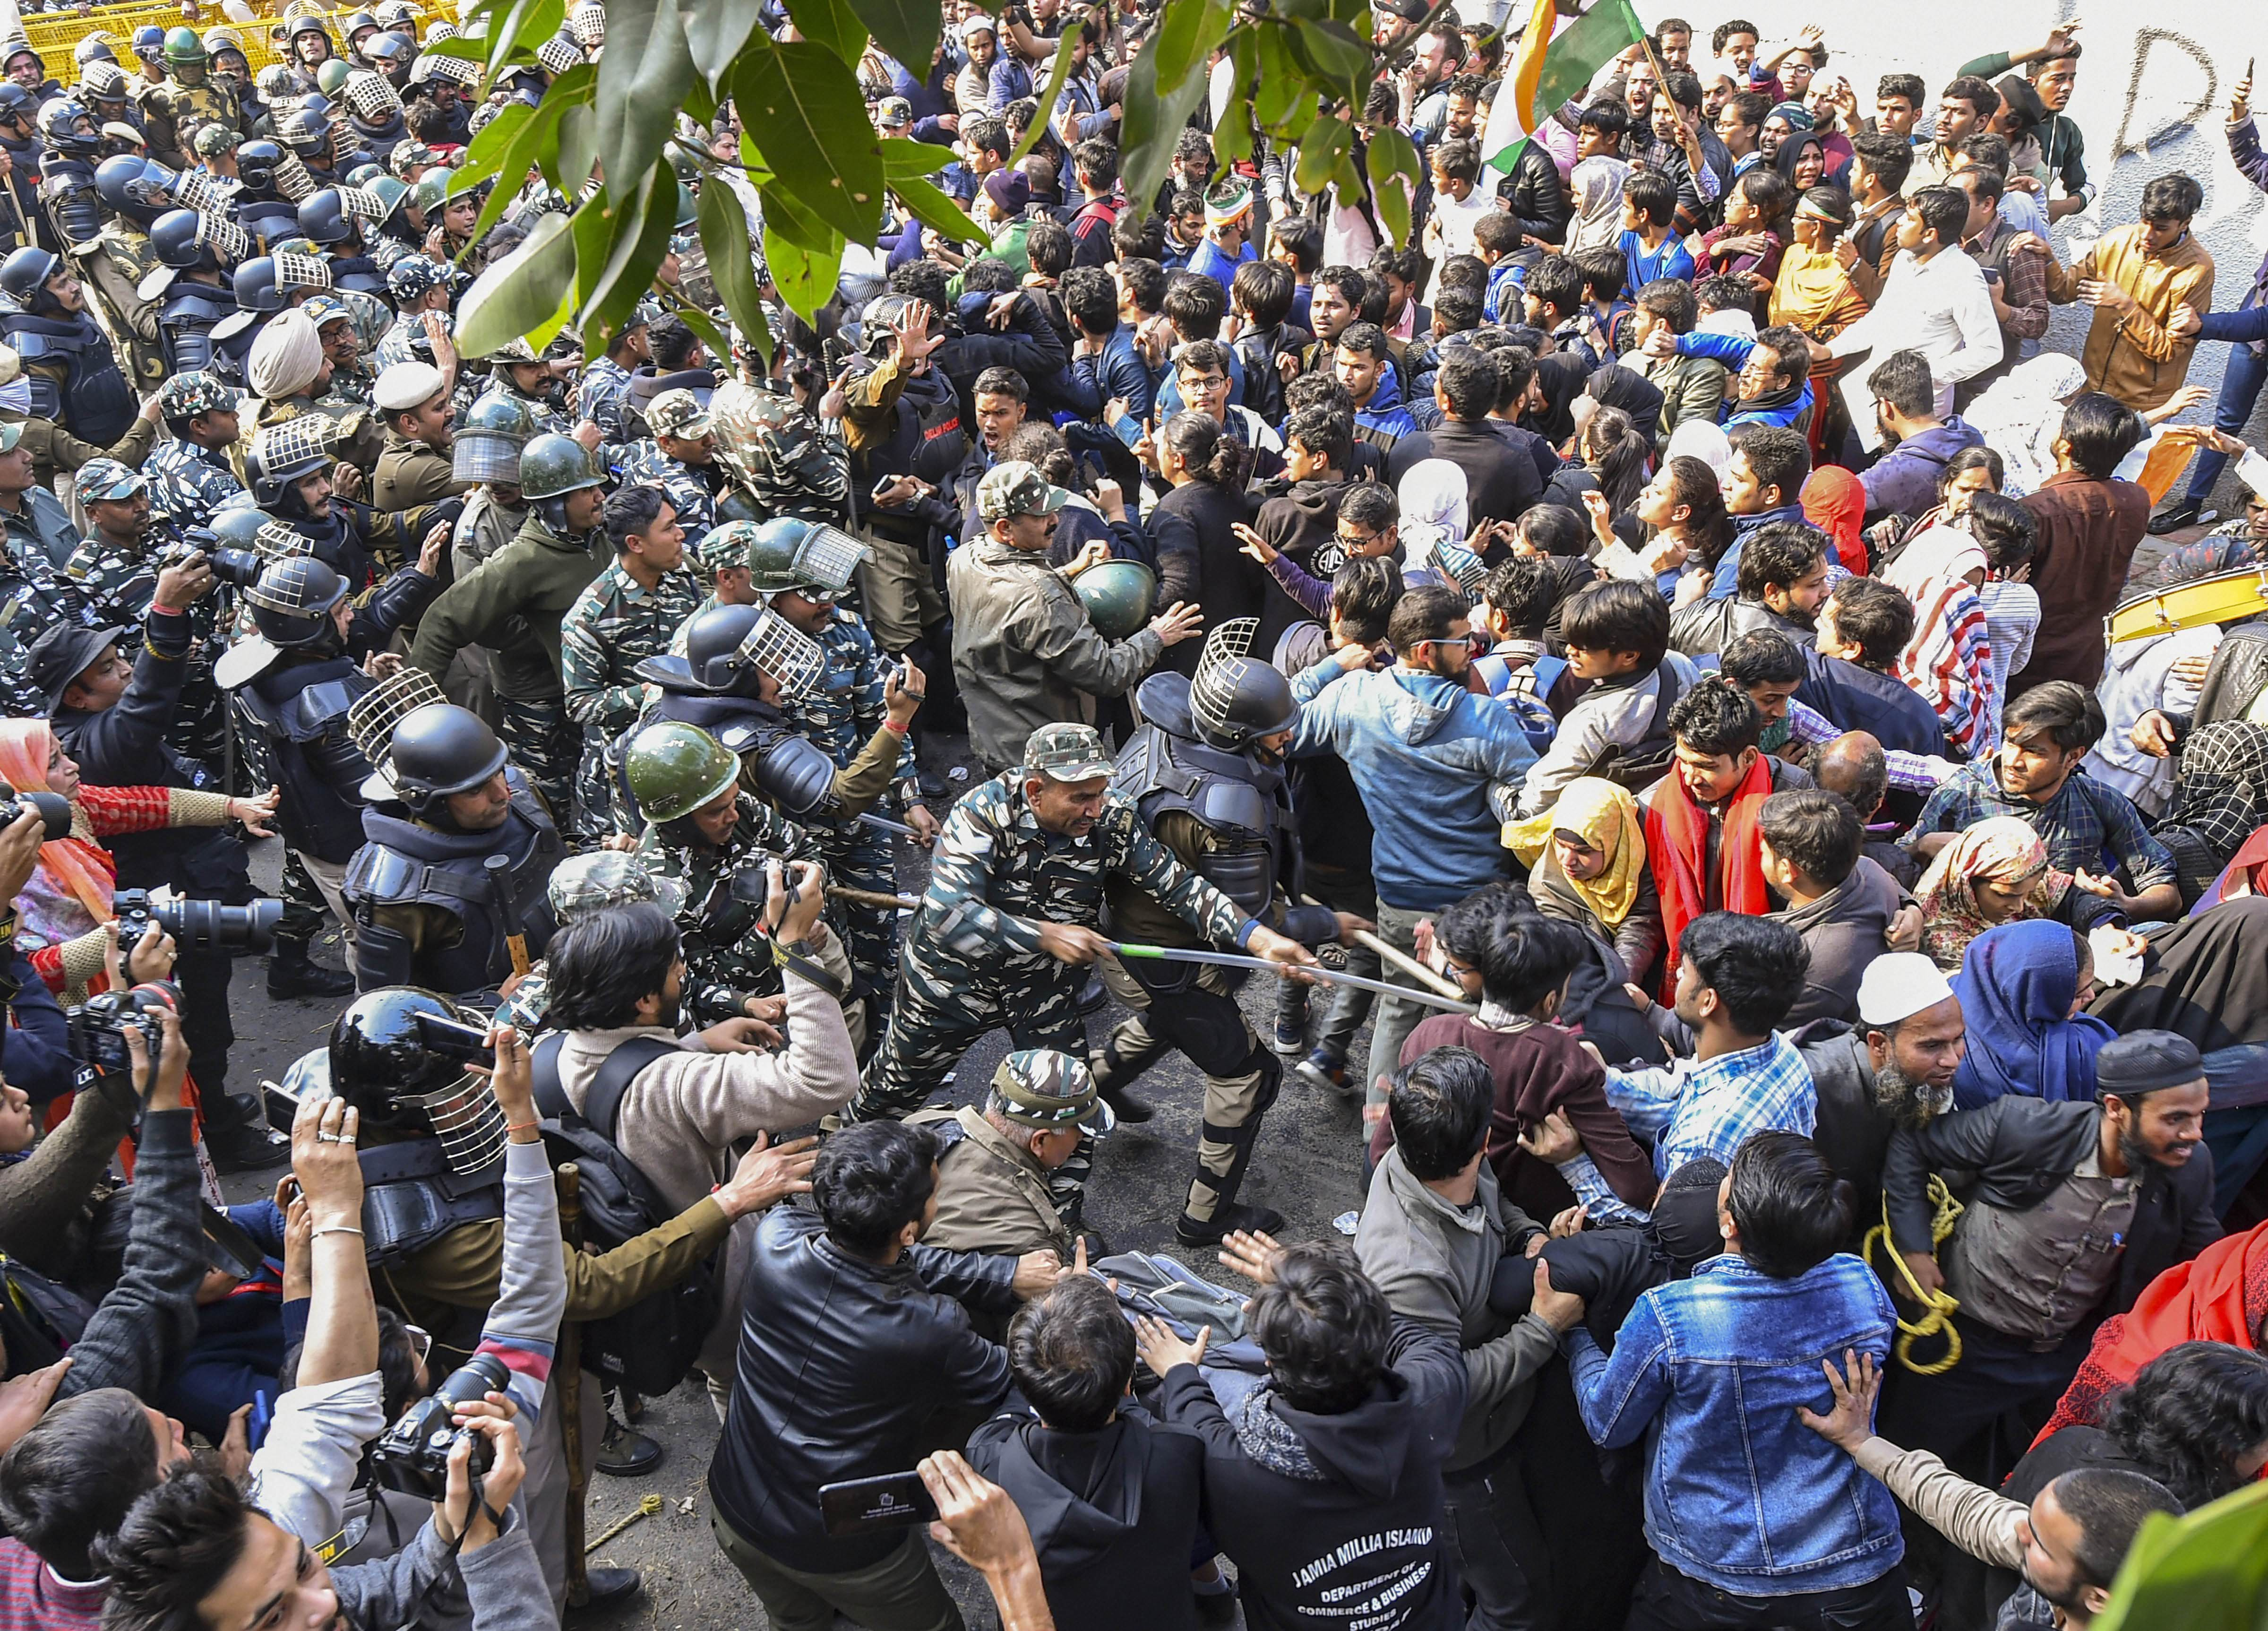 Police baton charge protesters to push them back during their march against the amended Citizenship Act, NRC and NPR, near Jamia Nagar in New Delhi, Monday, Feb. 10, 2020.